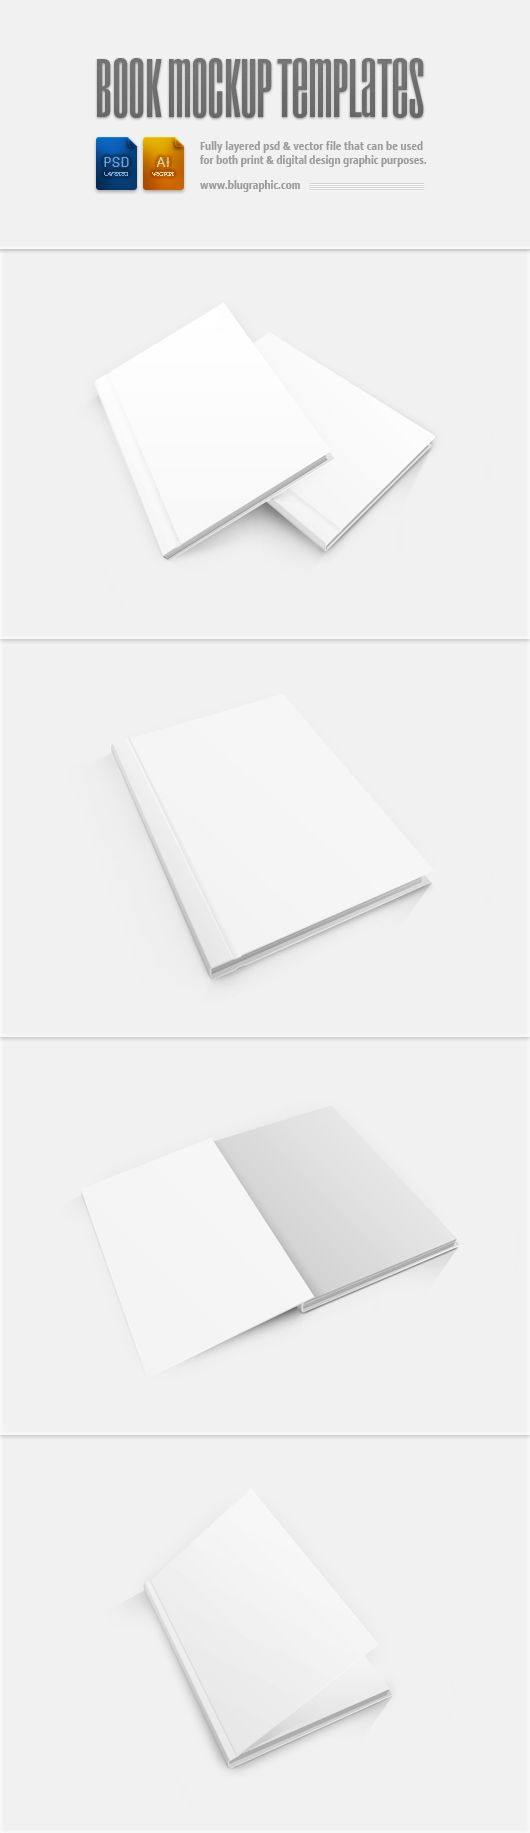 Book Mockup Template (Psd)  http://www.blugraphic.com/2013/05/29/book-mockup-template-psd/